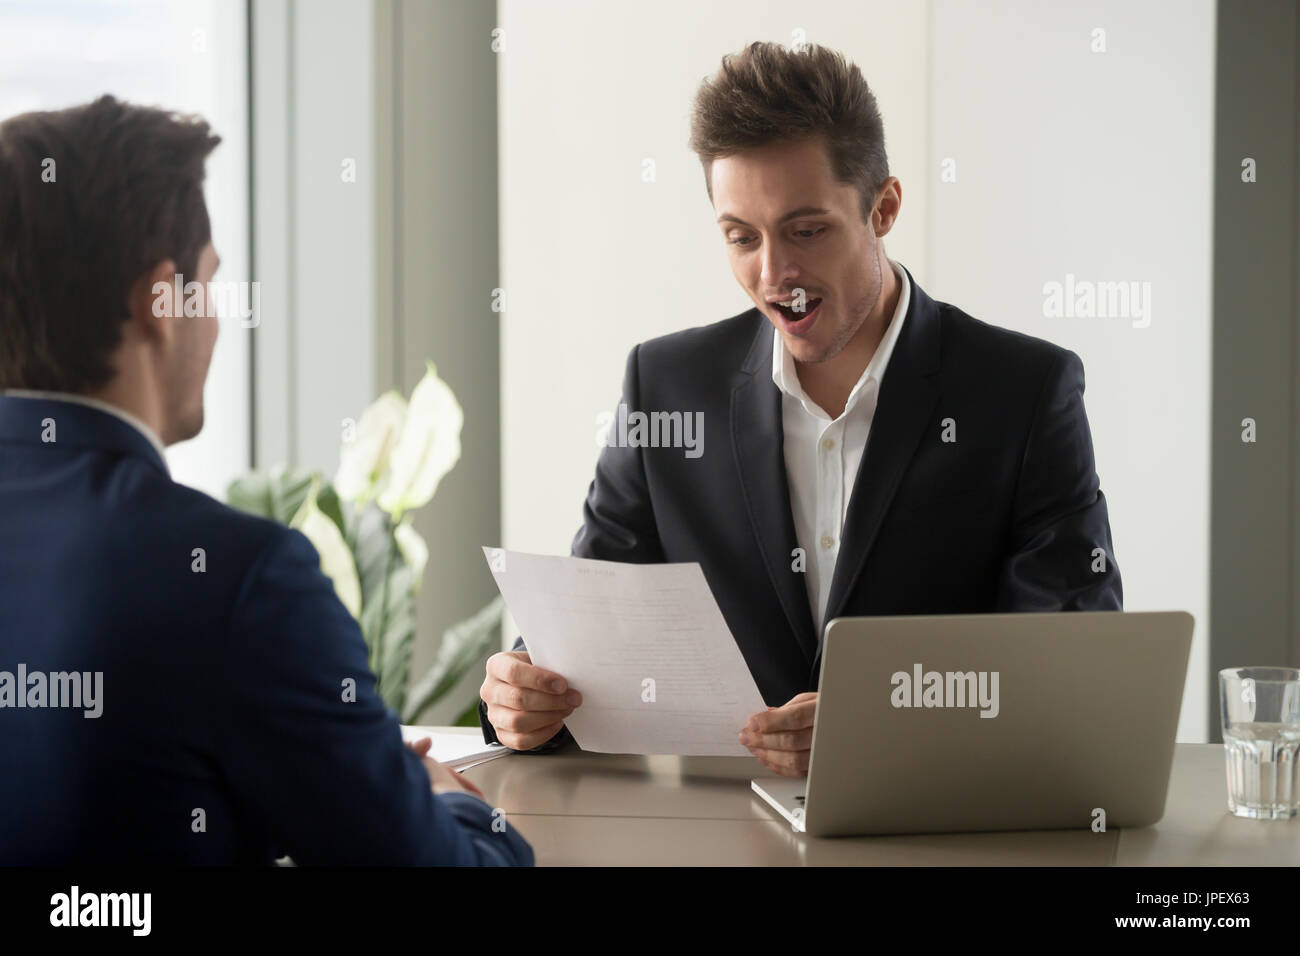 Excited businessman looking amazed while reading document, impre - Stock Image